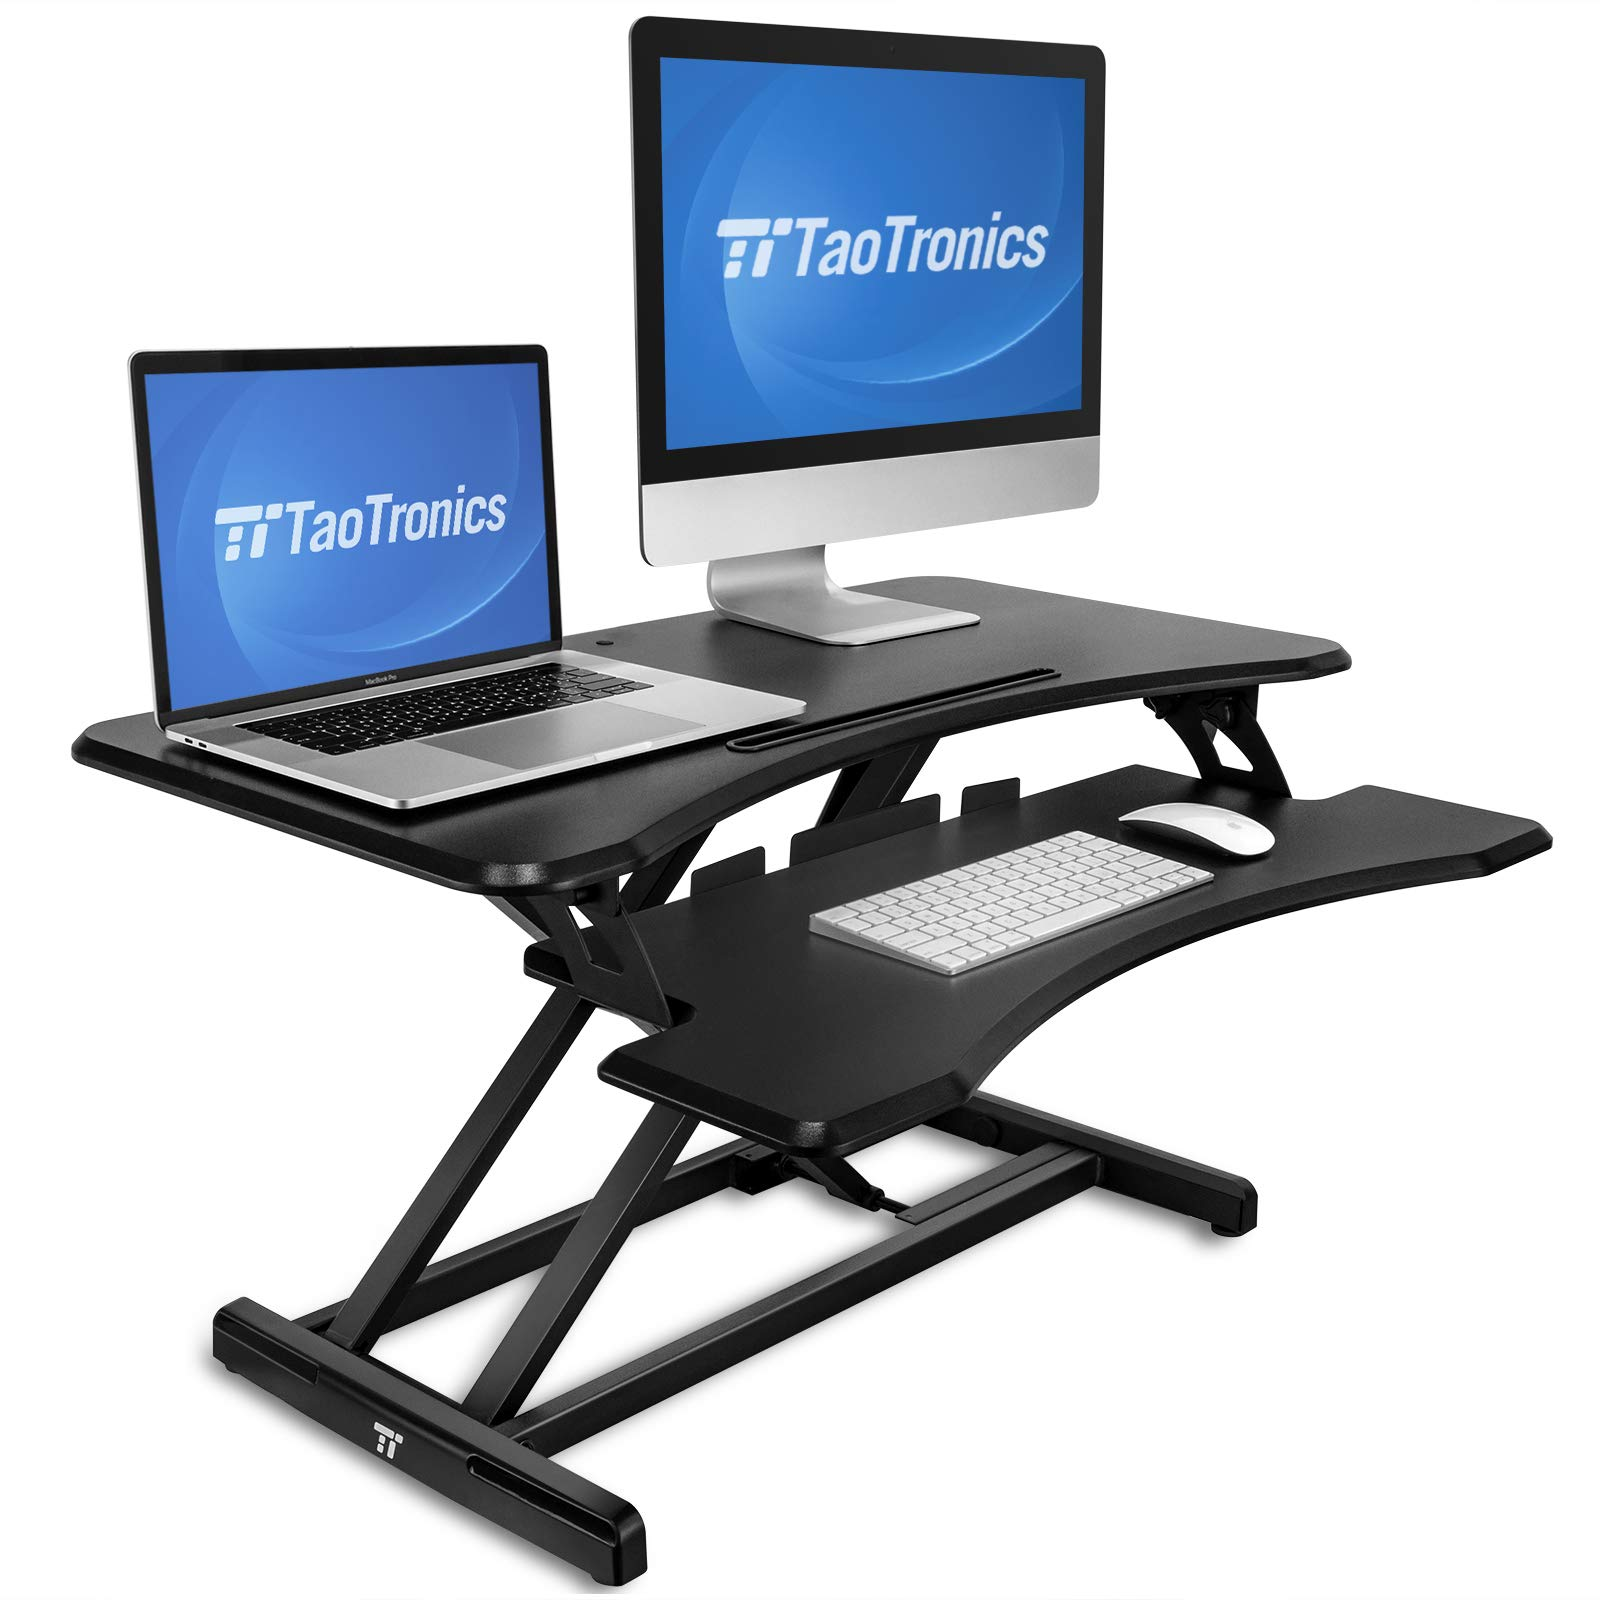 Standing Desk Converter, TaoTronics 36 inch Stand Up Desk Sit to Stand Desk Adjustable Riser, Fit Dual Monitors with Removable Keyboard Tray Ergonomic Workstation by TaoTronics